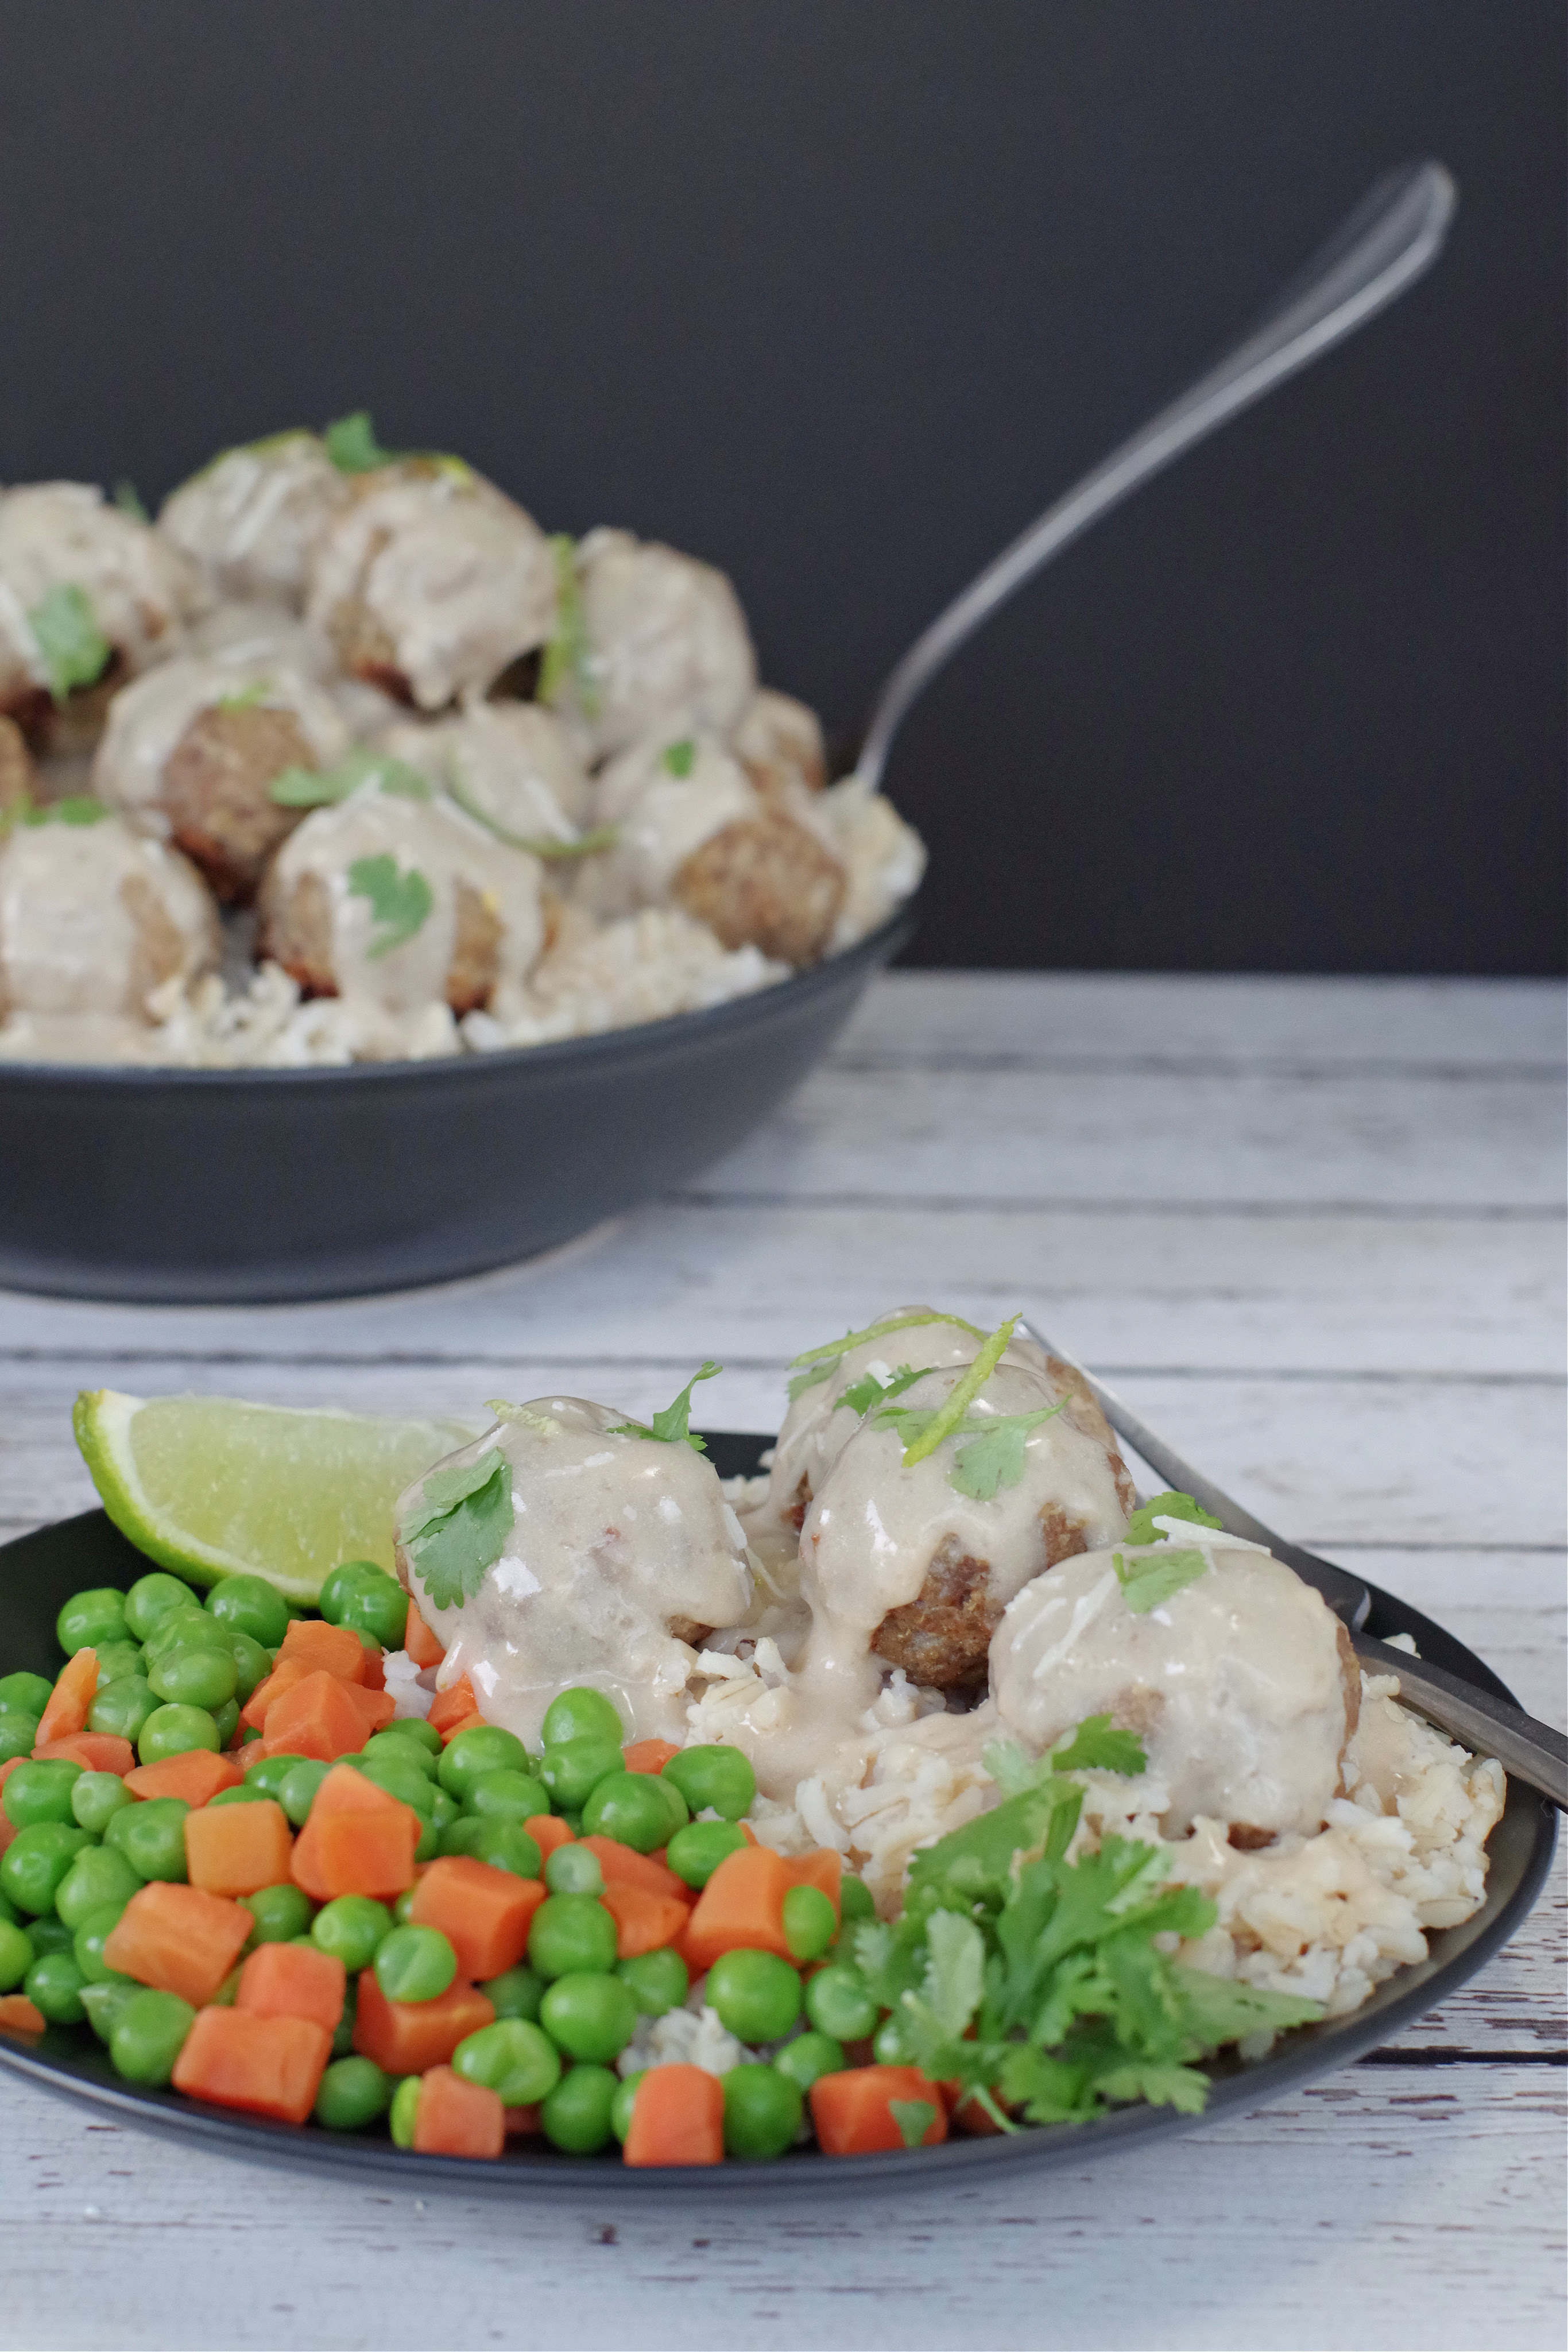 Healthy turkey meatballs with sauce on black plate, with veggies and rice and black bowl with turkey meatballs with white sauce in background